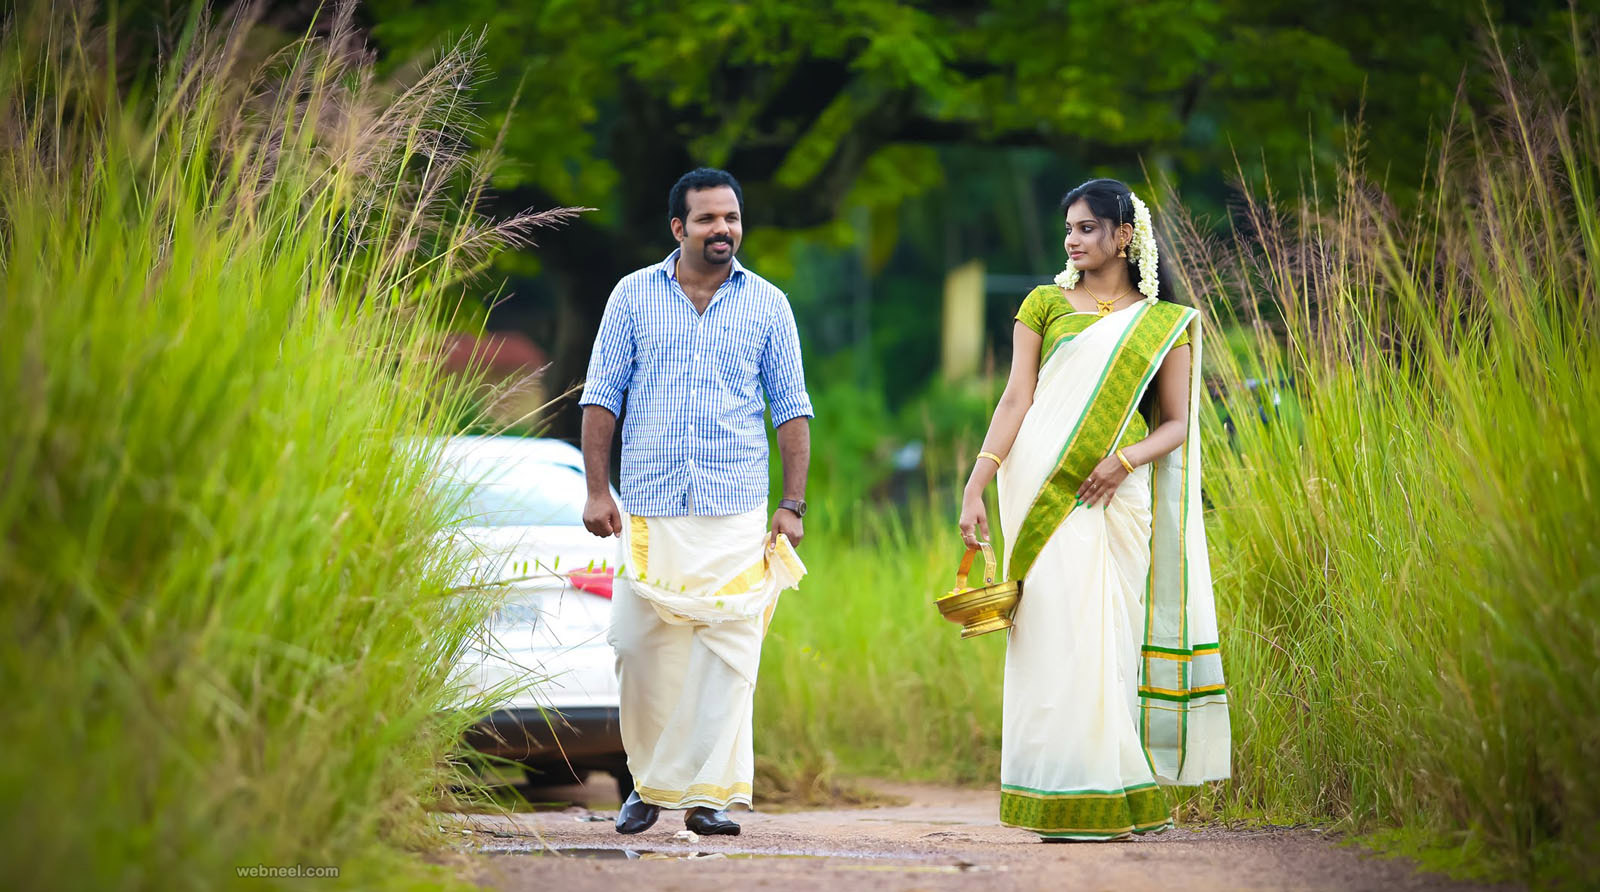 Wedding Outdoor Photography Kerala: Kerala Wedding Photography Outdoor 7